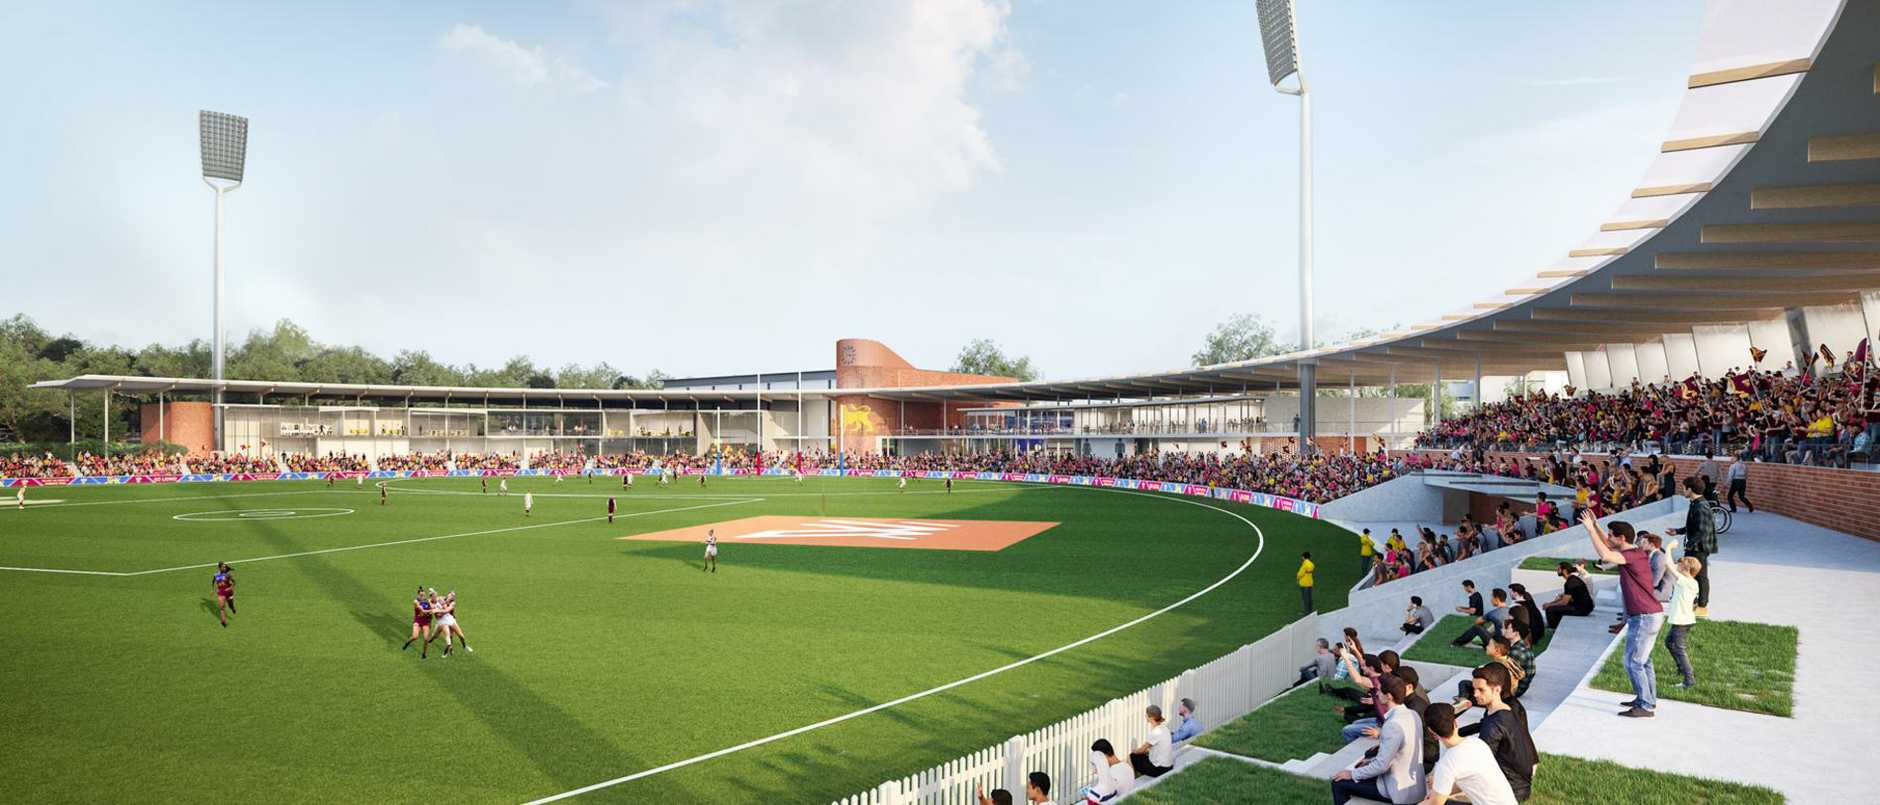 An artist's impression of the $70 million AFLW Springfield Stadium dubbed The Reserve.